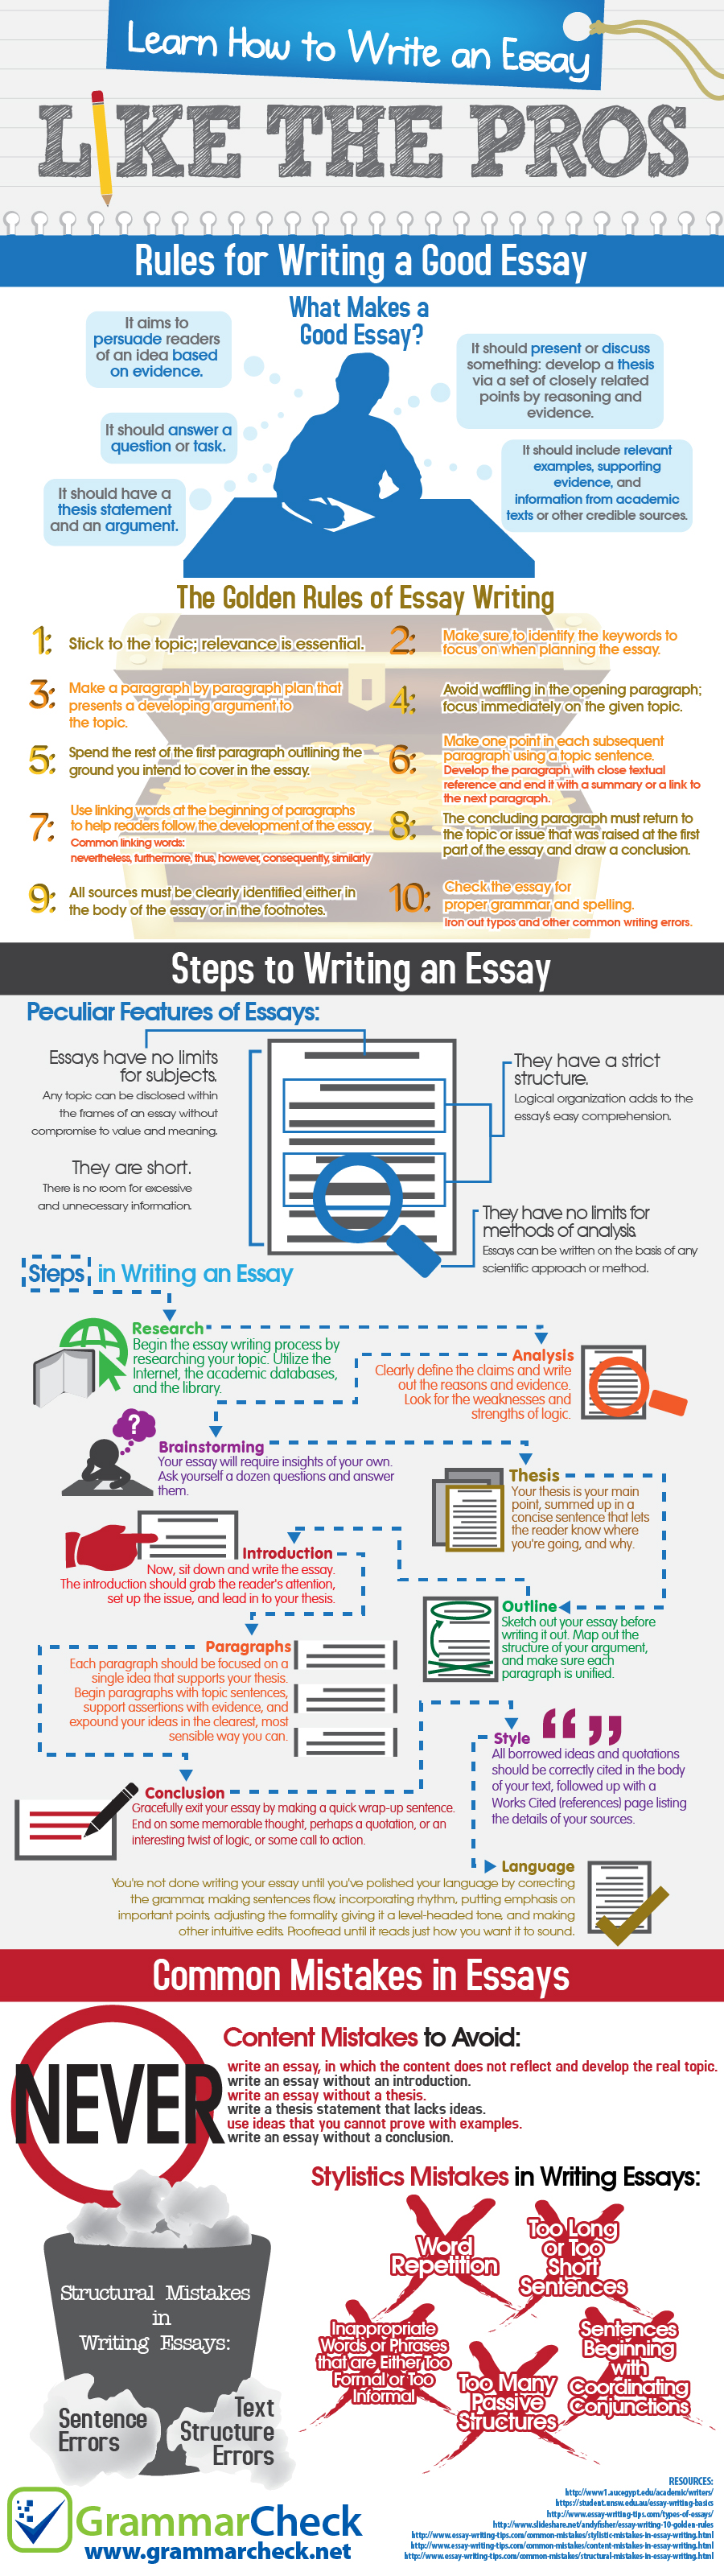 What are the rules for writing a discursive essay please help 2morrow is exam.?